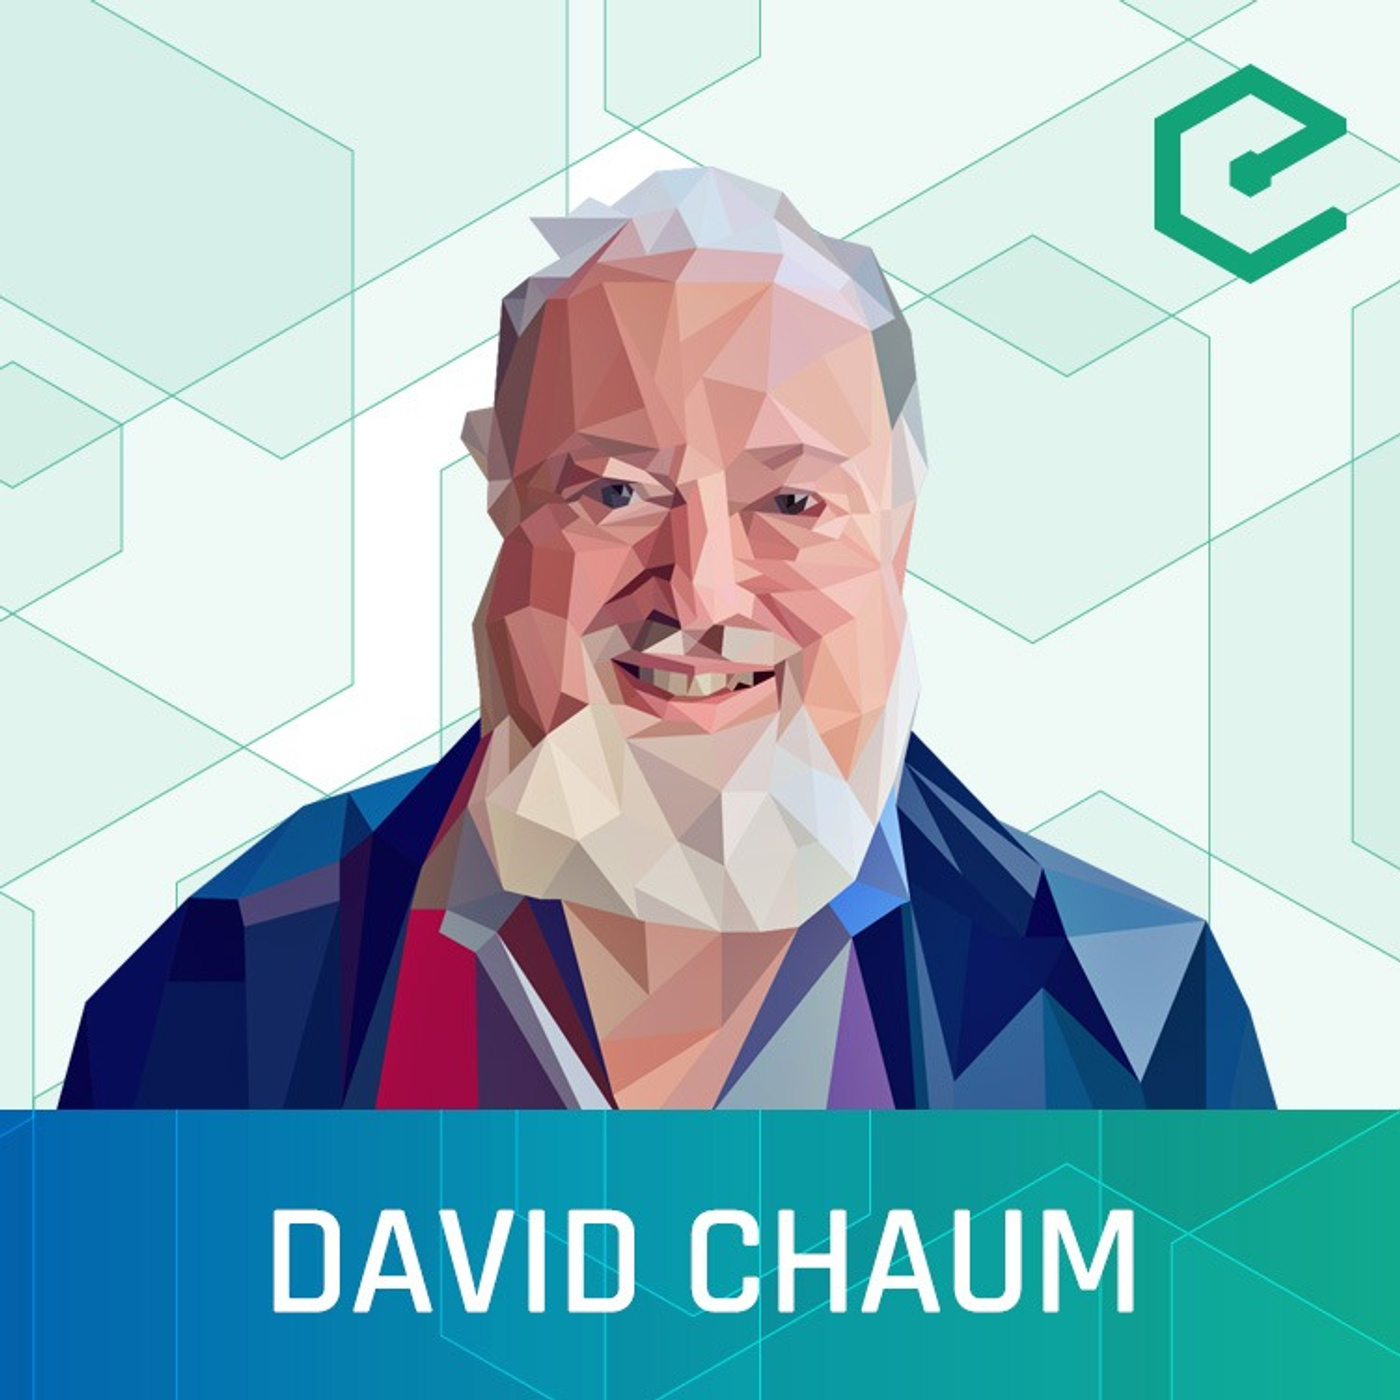 David Chaum: The Forefather of Cryptocurrencies and the Cypherpunk Movement